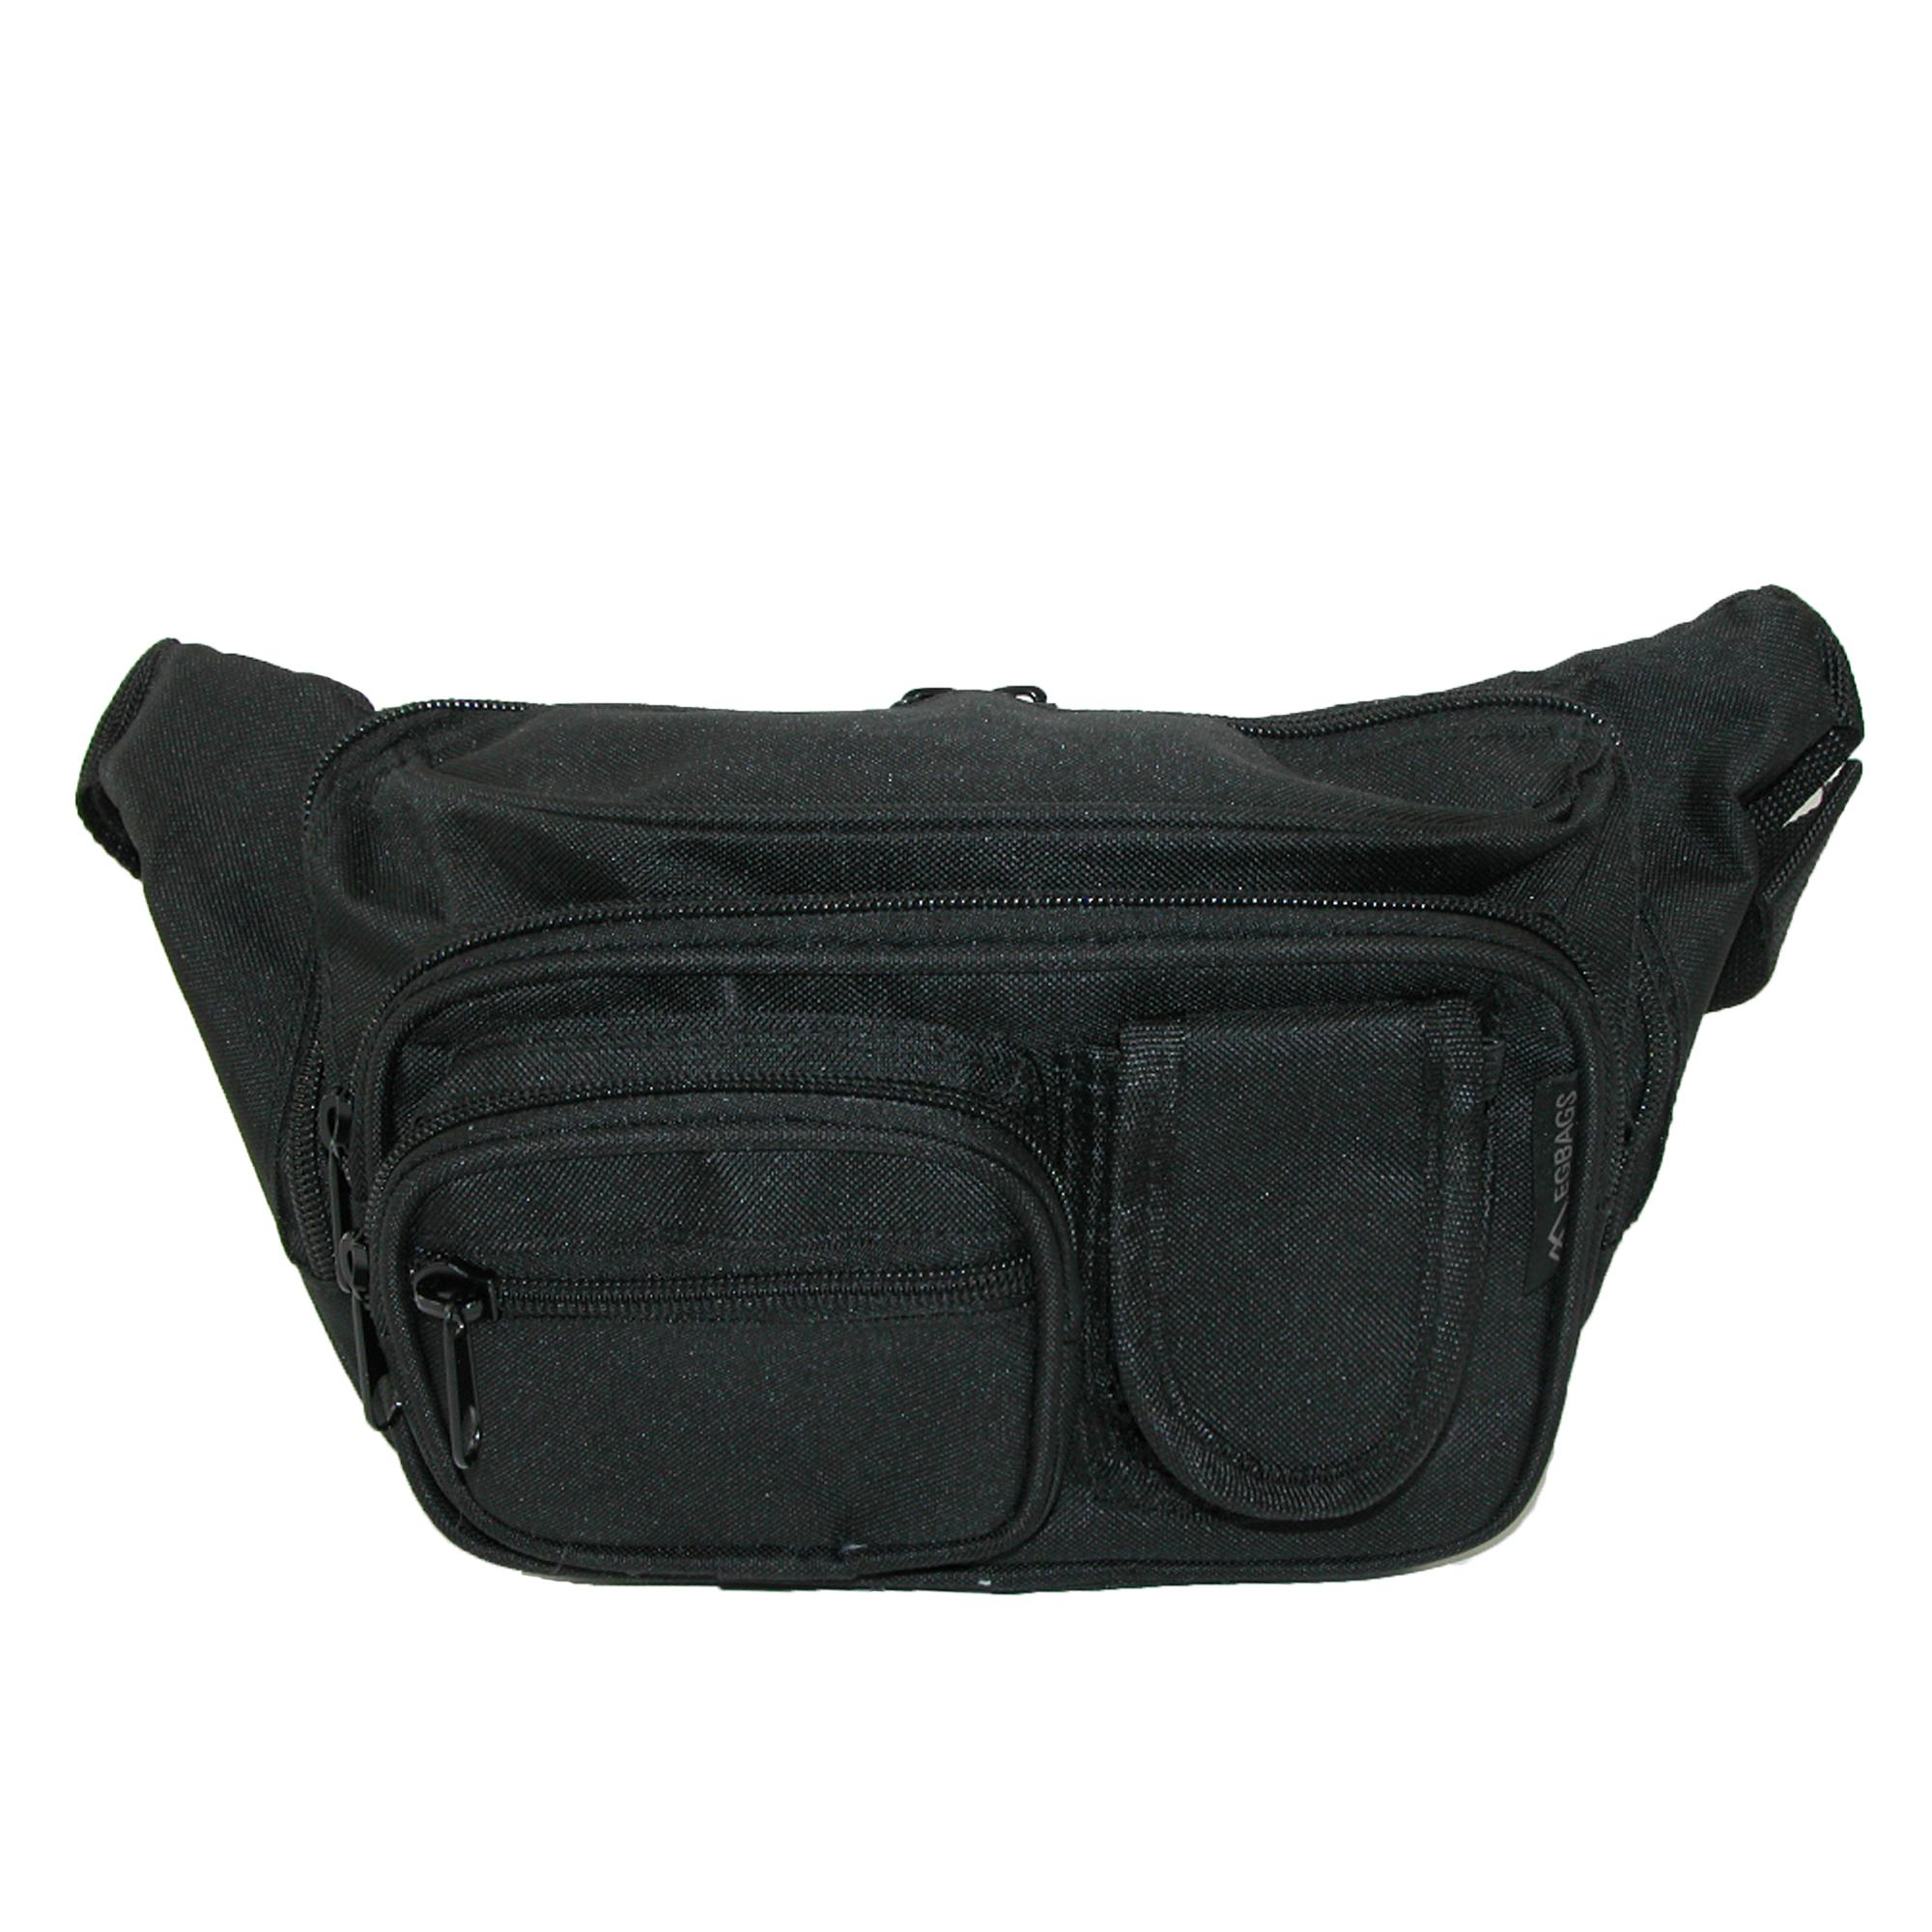 Everest_Concealed_Carry_Waist_Pack_